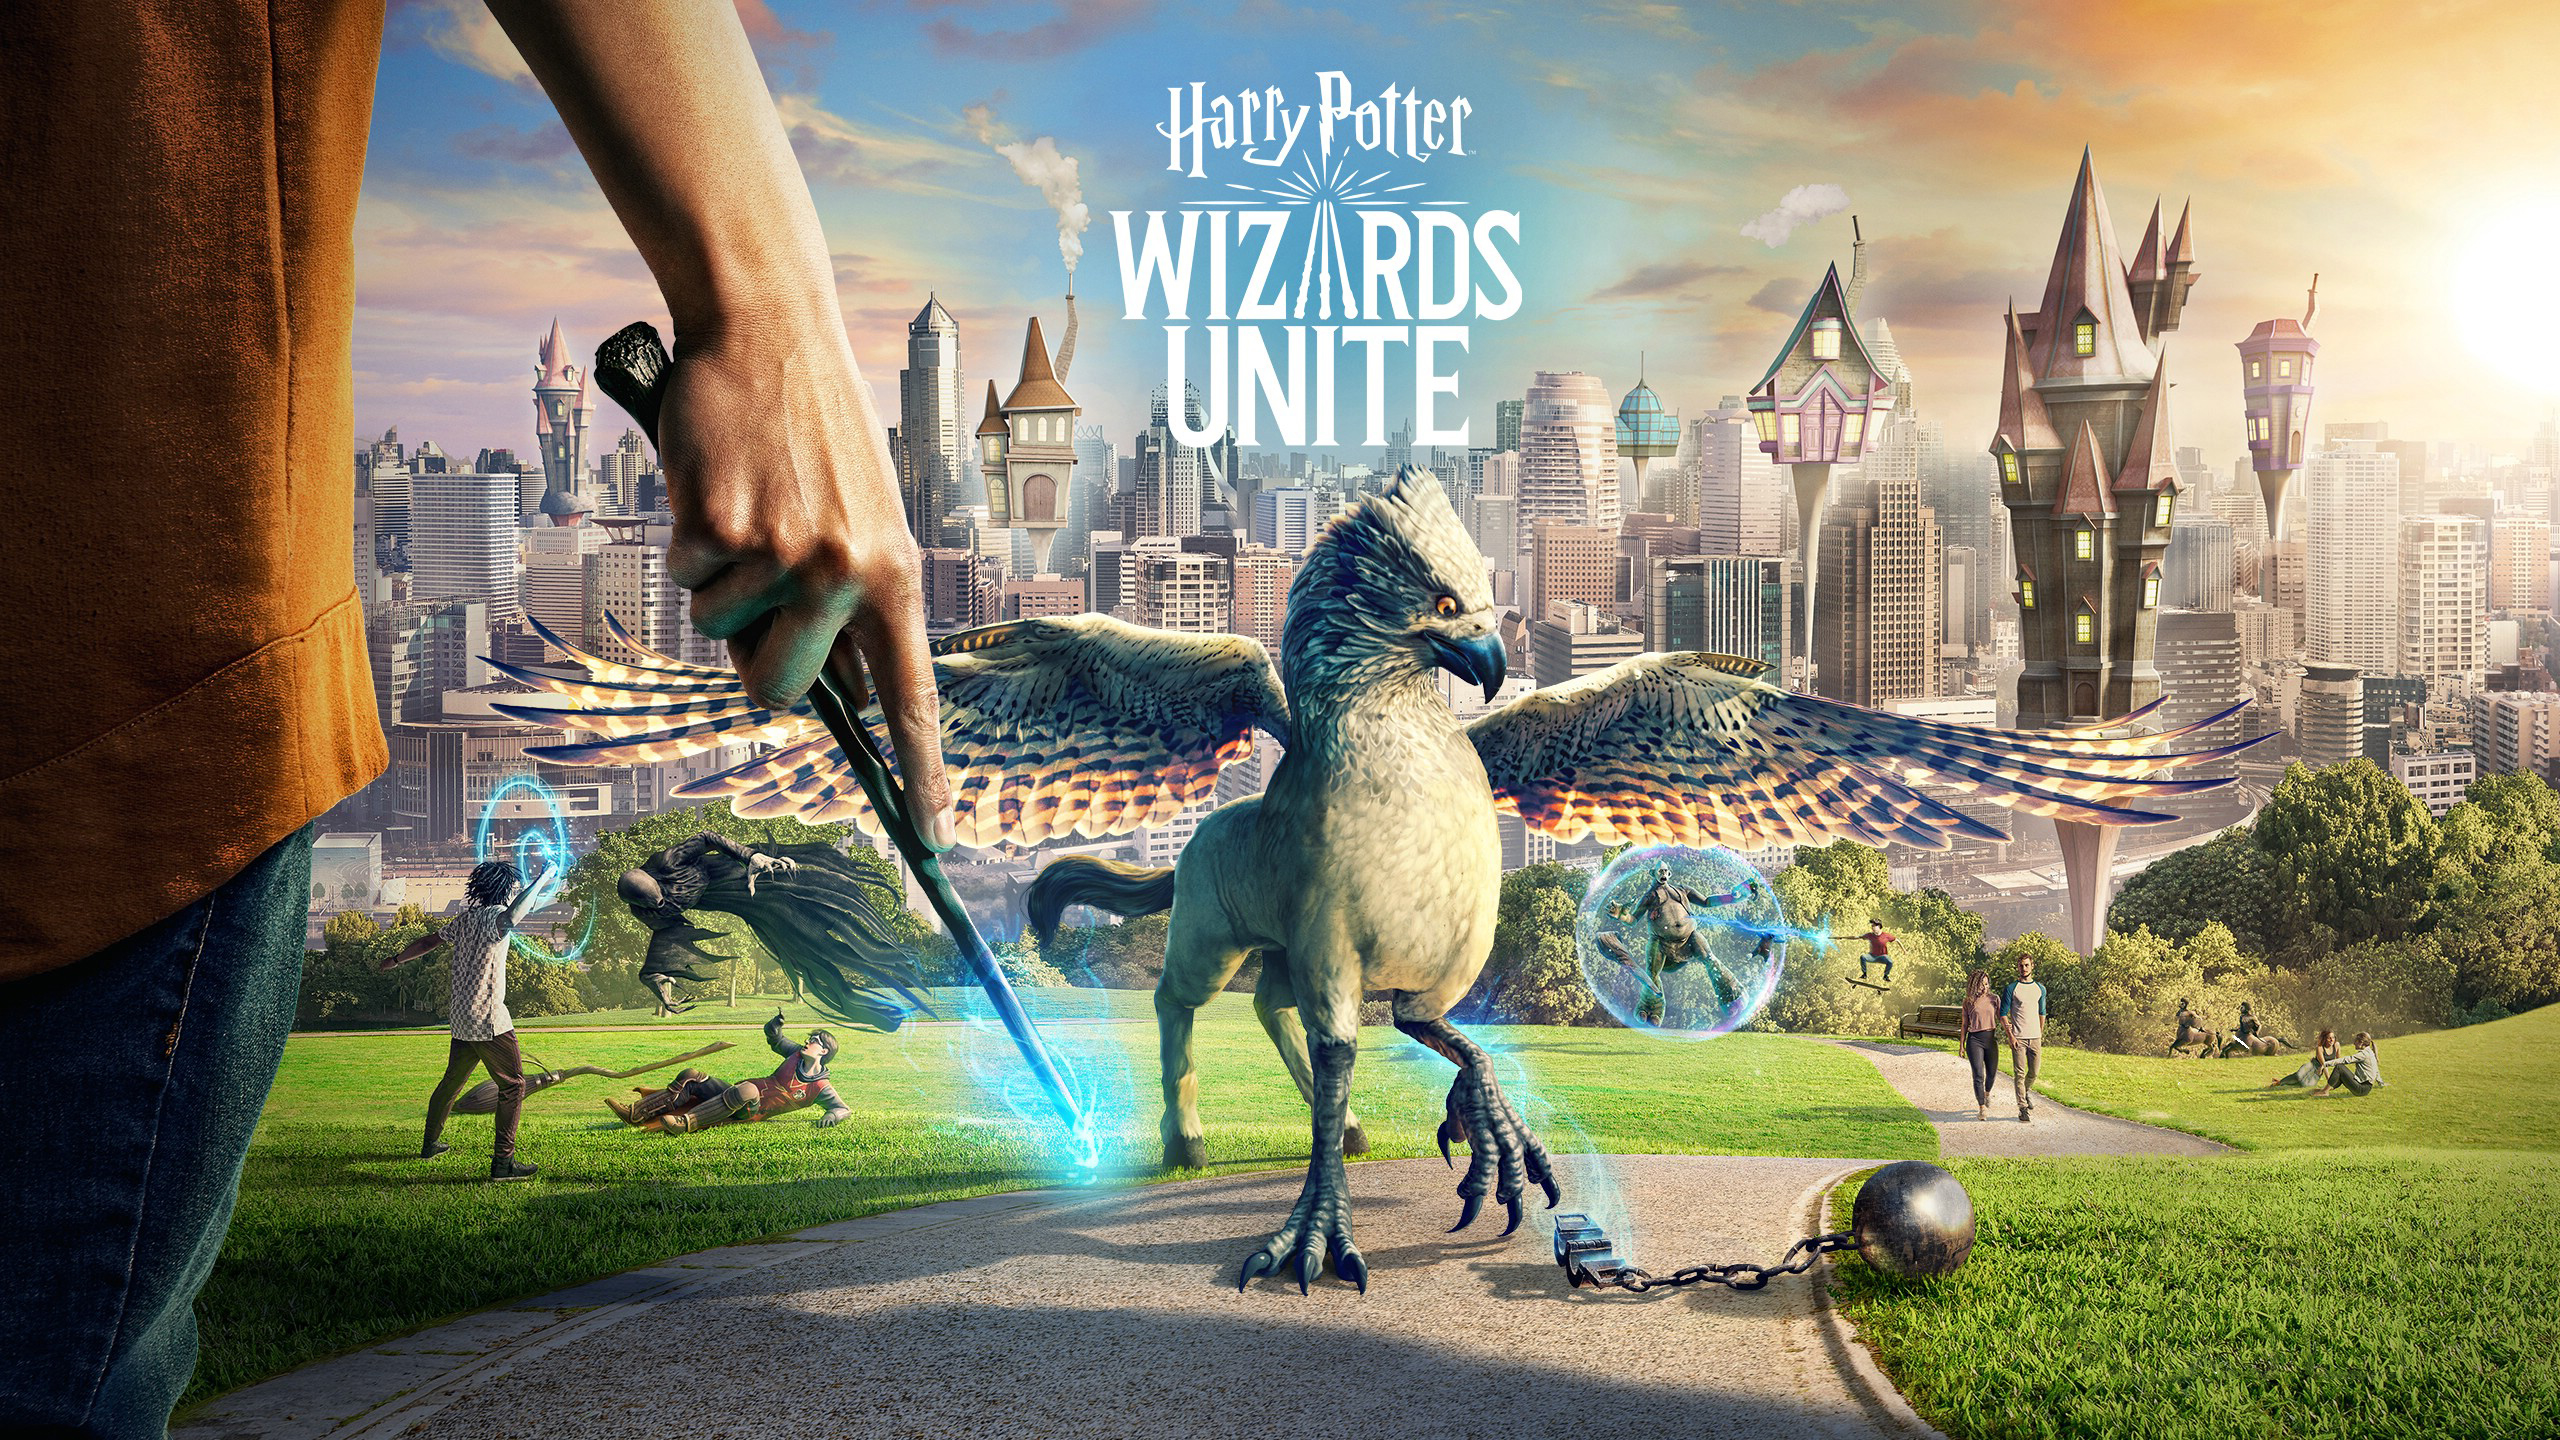 1024x600 Harry Potter Wizards Unite Game 1024x600 Resolution